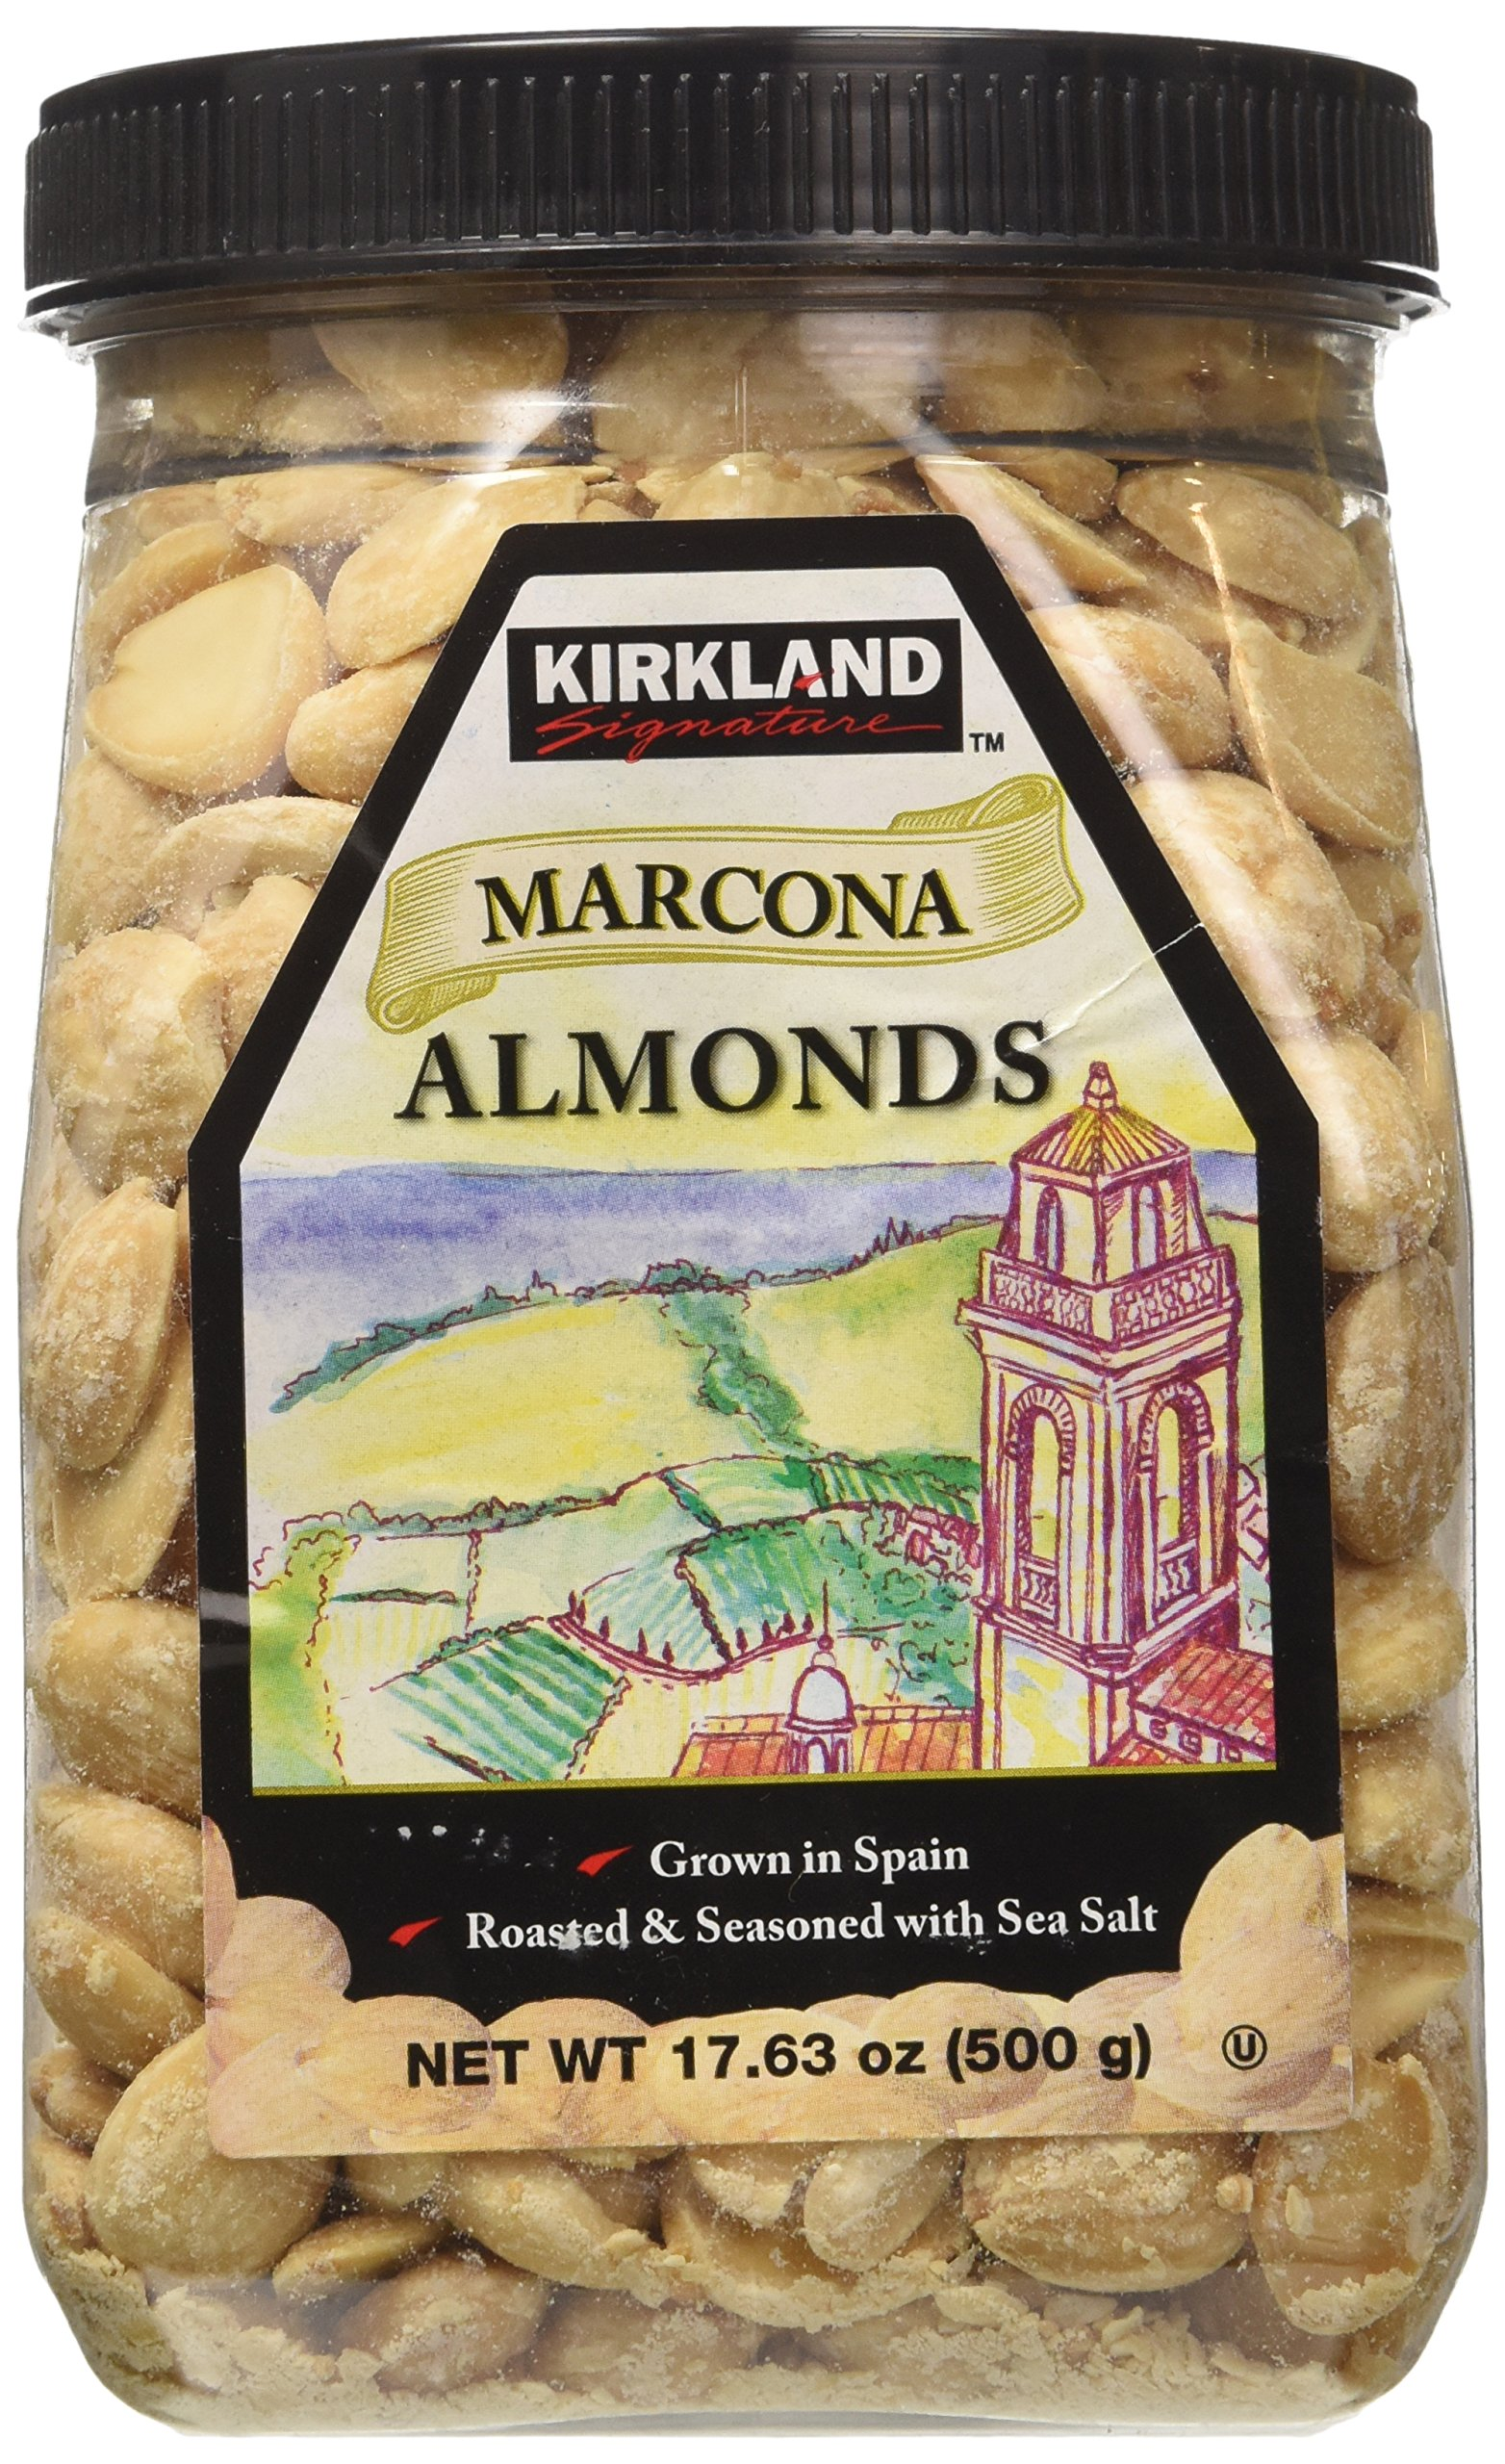 Kirkland Marcona Almonds, Roasted and Seasoned with Sea Salt, 17.63 Ounce